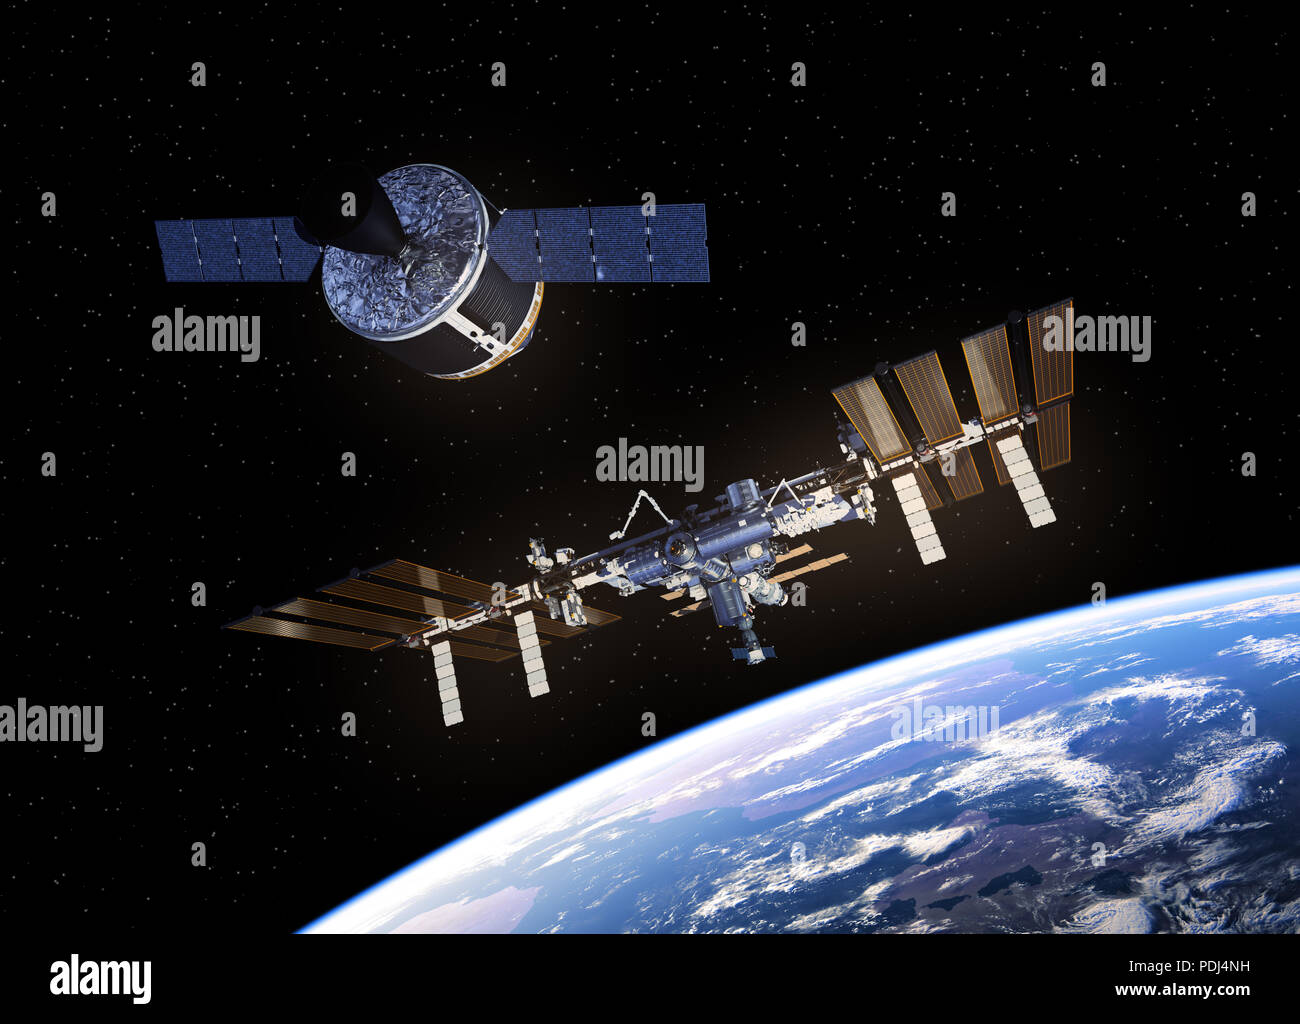 Cargo Spaceship Is Preparing To Dock With Space Station. 3D Illustration. - Stock Image